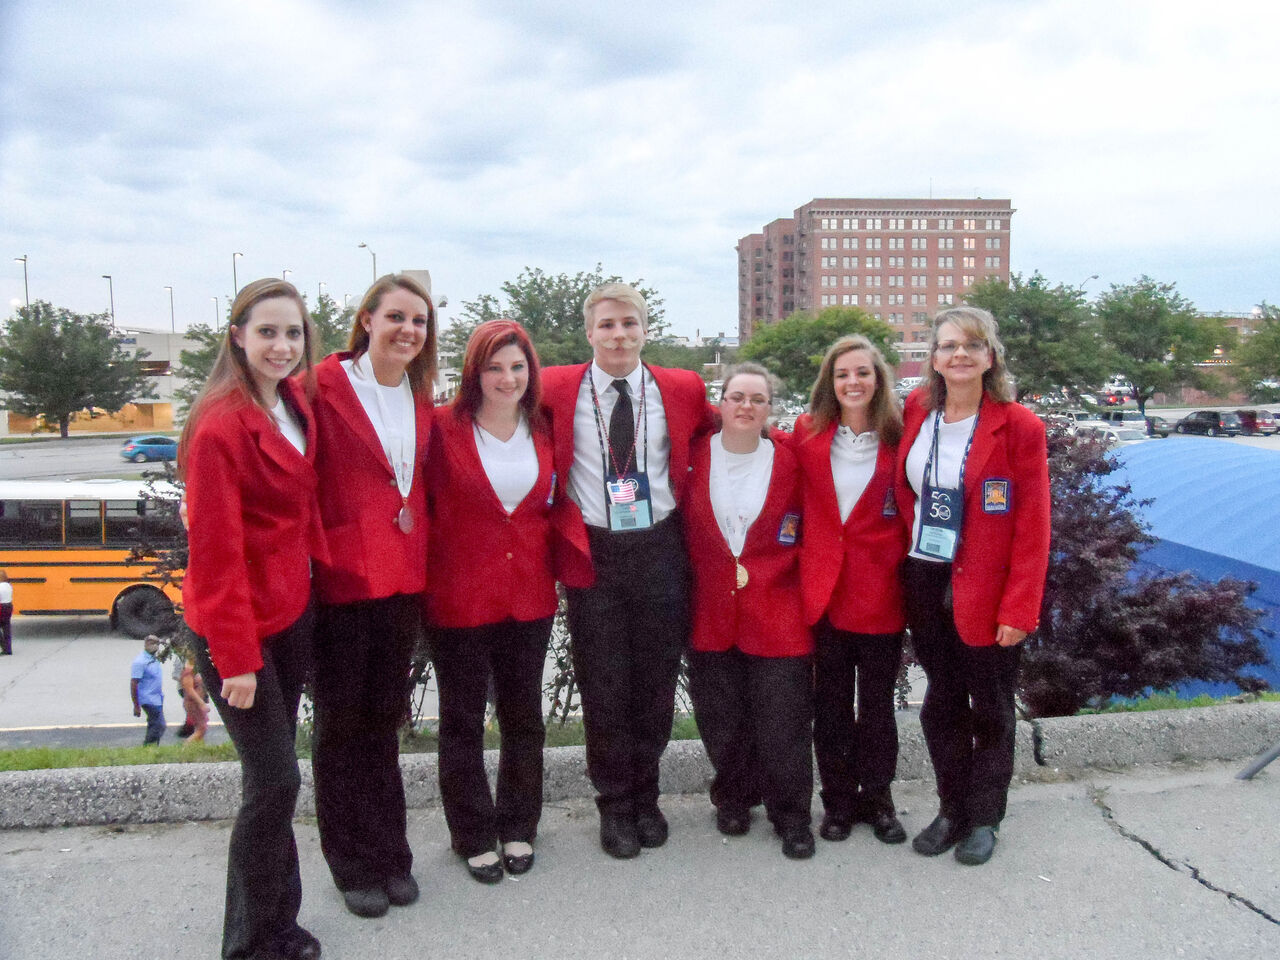 (Left to right): Taylor Money, Marinna Carroll, Emily Weeder, Brendon Hicks, Audrey Seltzer, Mallory Baily, and instructor Crystal Gutshall